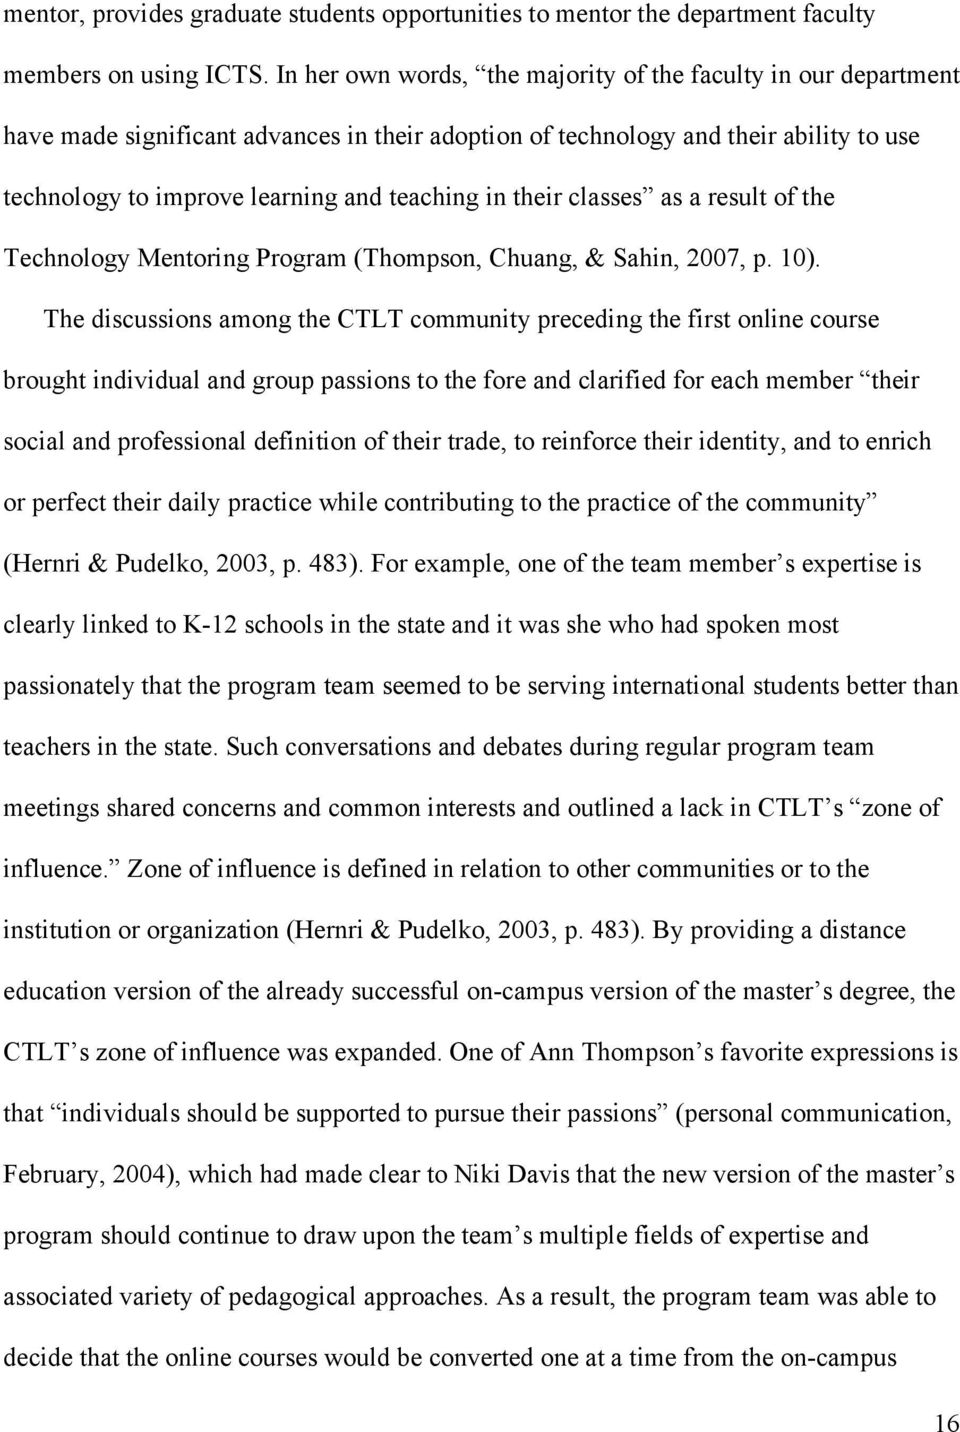 their classes as a result of the Technology Mentoring Program (Thompson, Chuang, & Sahin, 2007, p. 10).